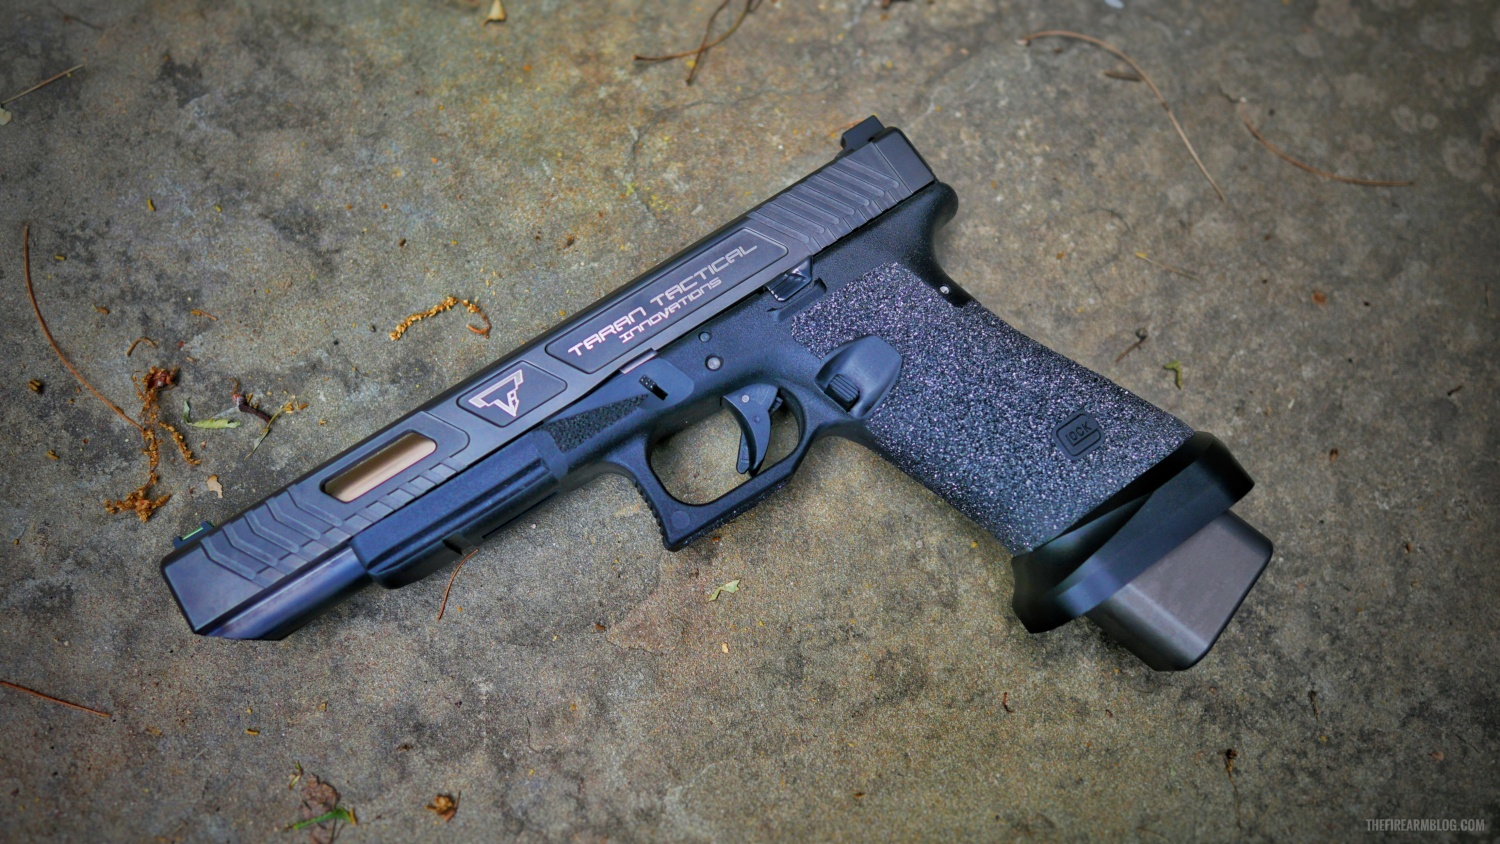 TFB REVIEW: Taran Tactical GLOCK G17L Combat Master -The